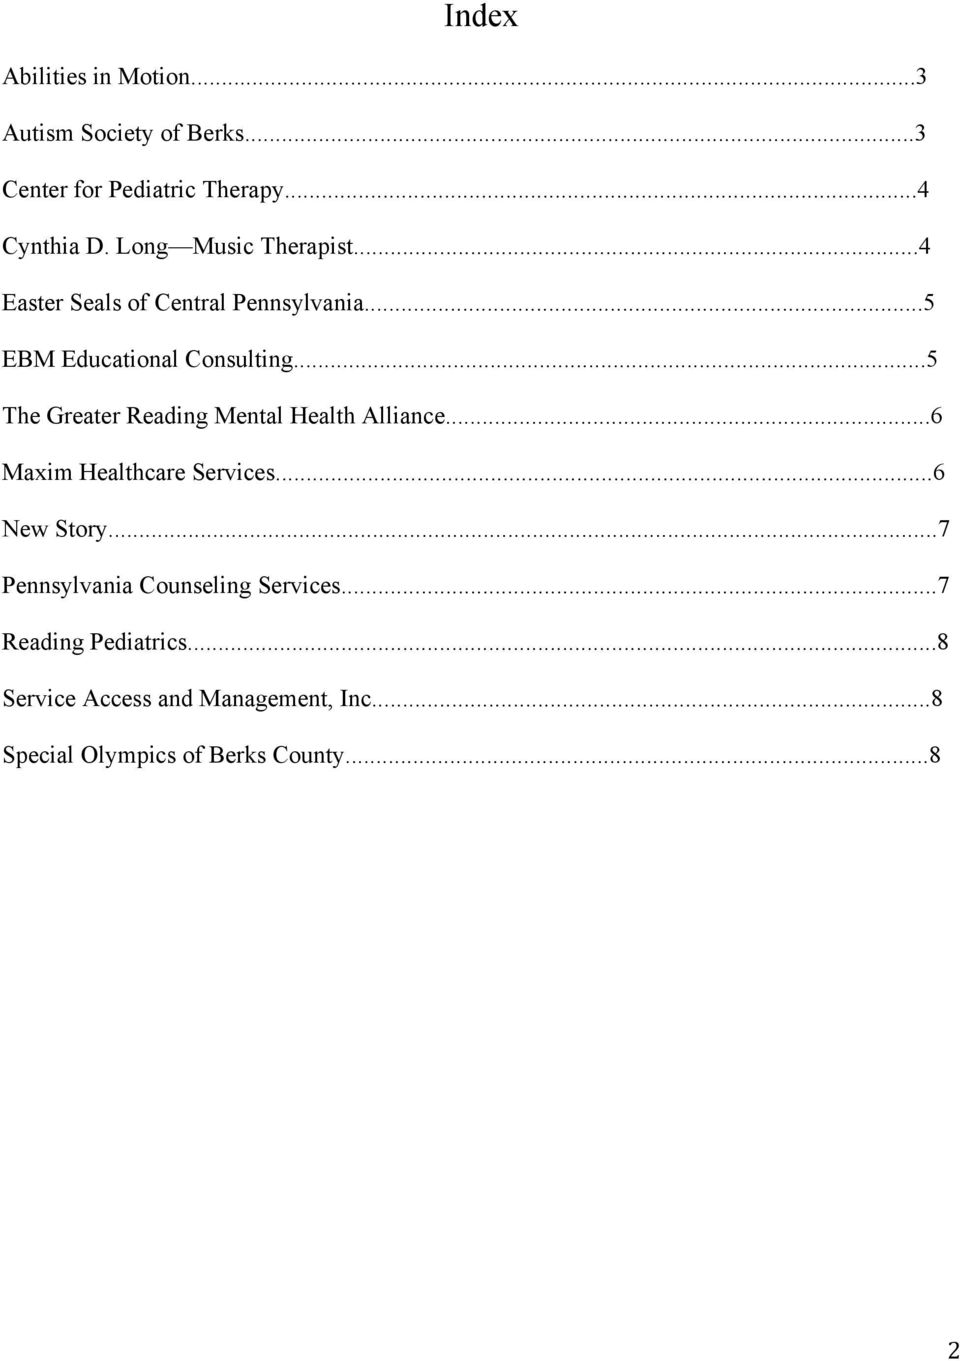 ..5 The Greater Reading Mental Health Alliance...6 Maxim Healthcare Services...6 New Story.